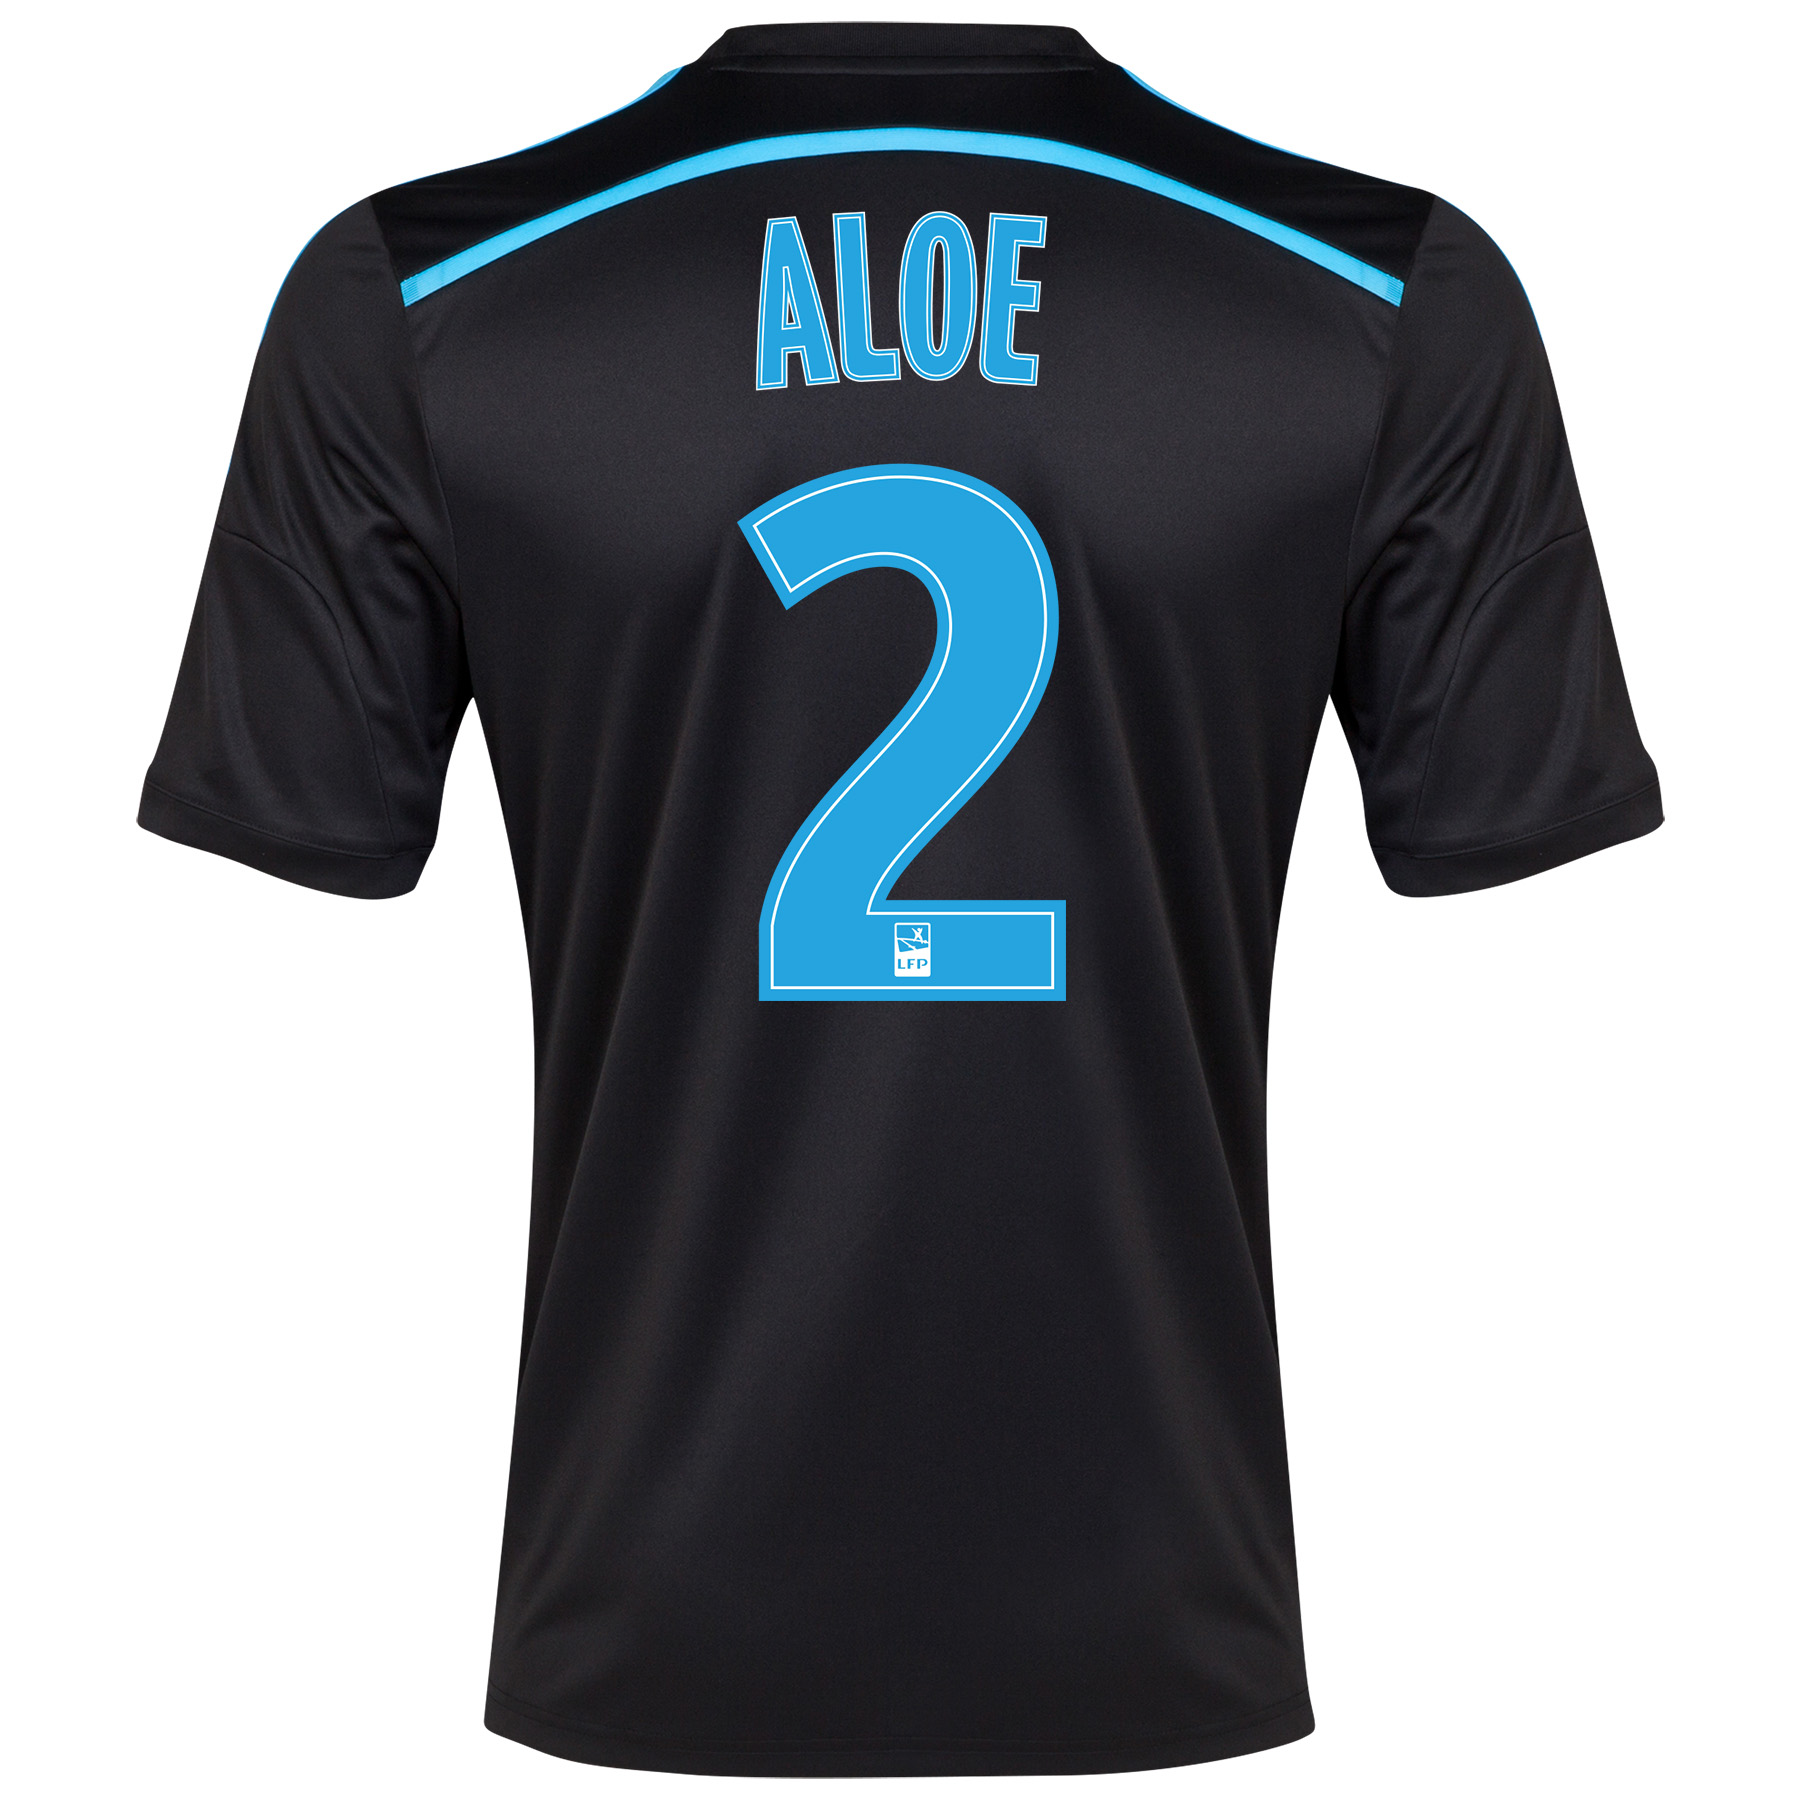 Olympique de Marseille 3rd Shirt Short Sleeve 2014/15 Black with Aloe 2 printing